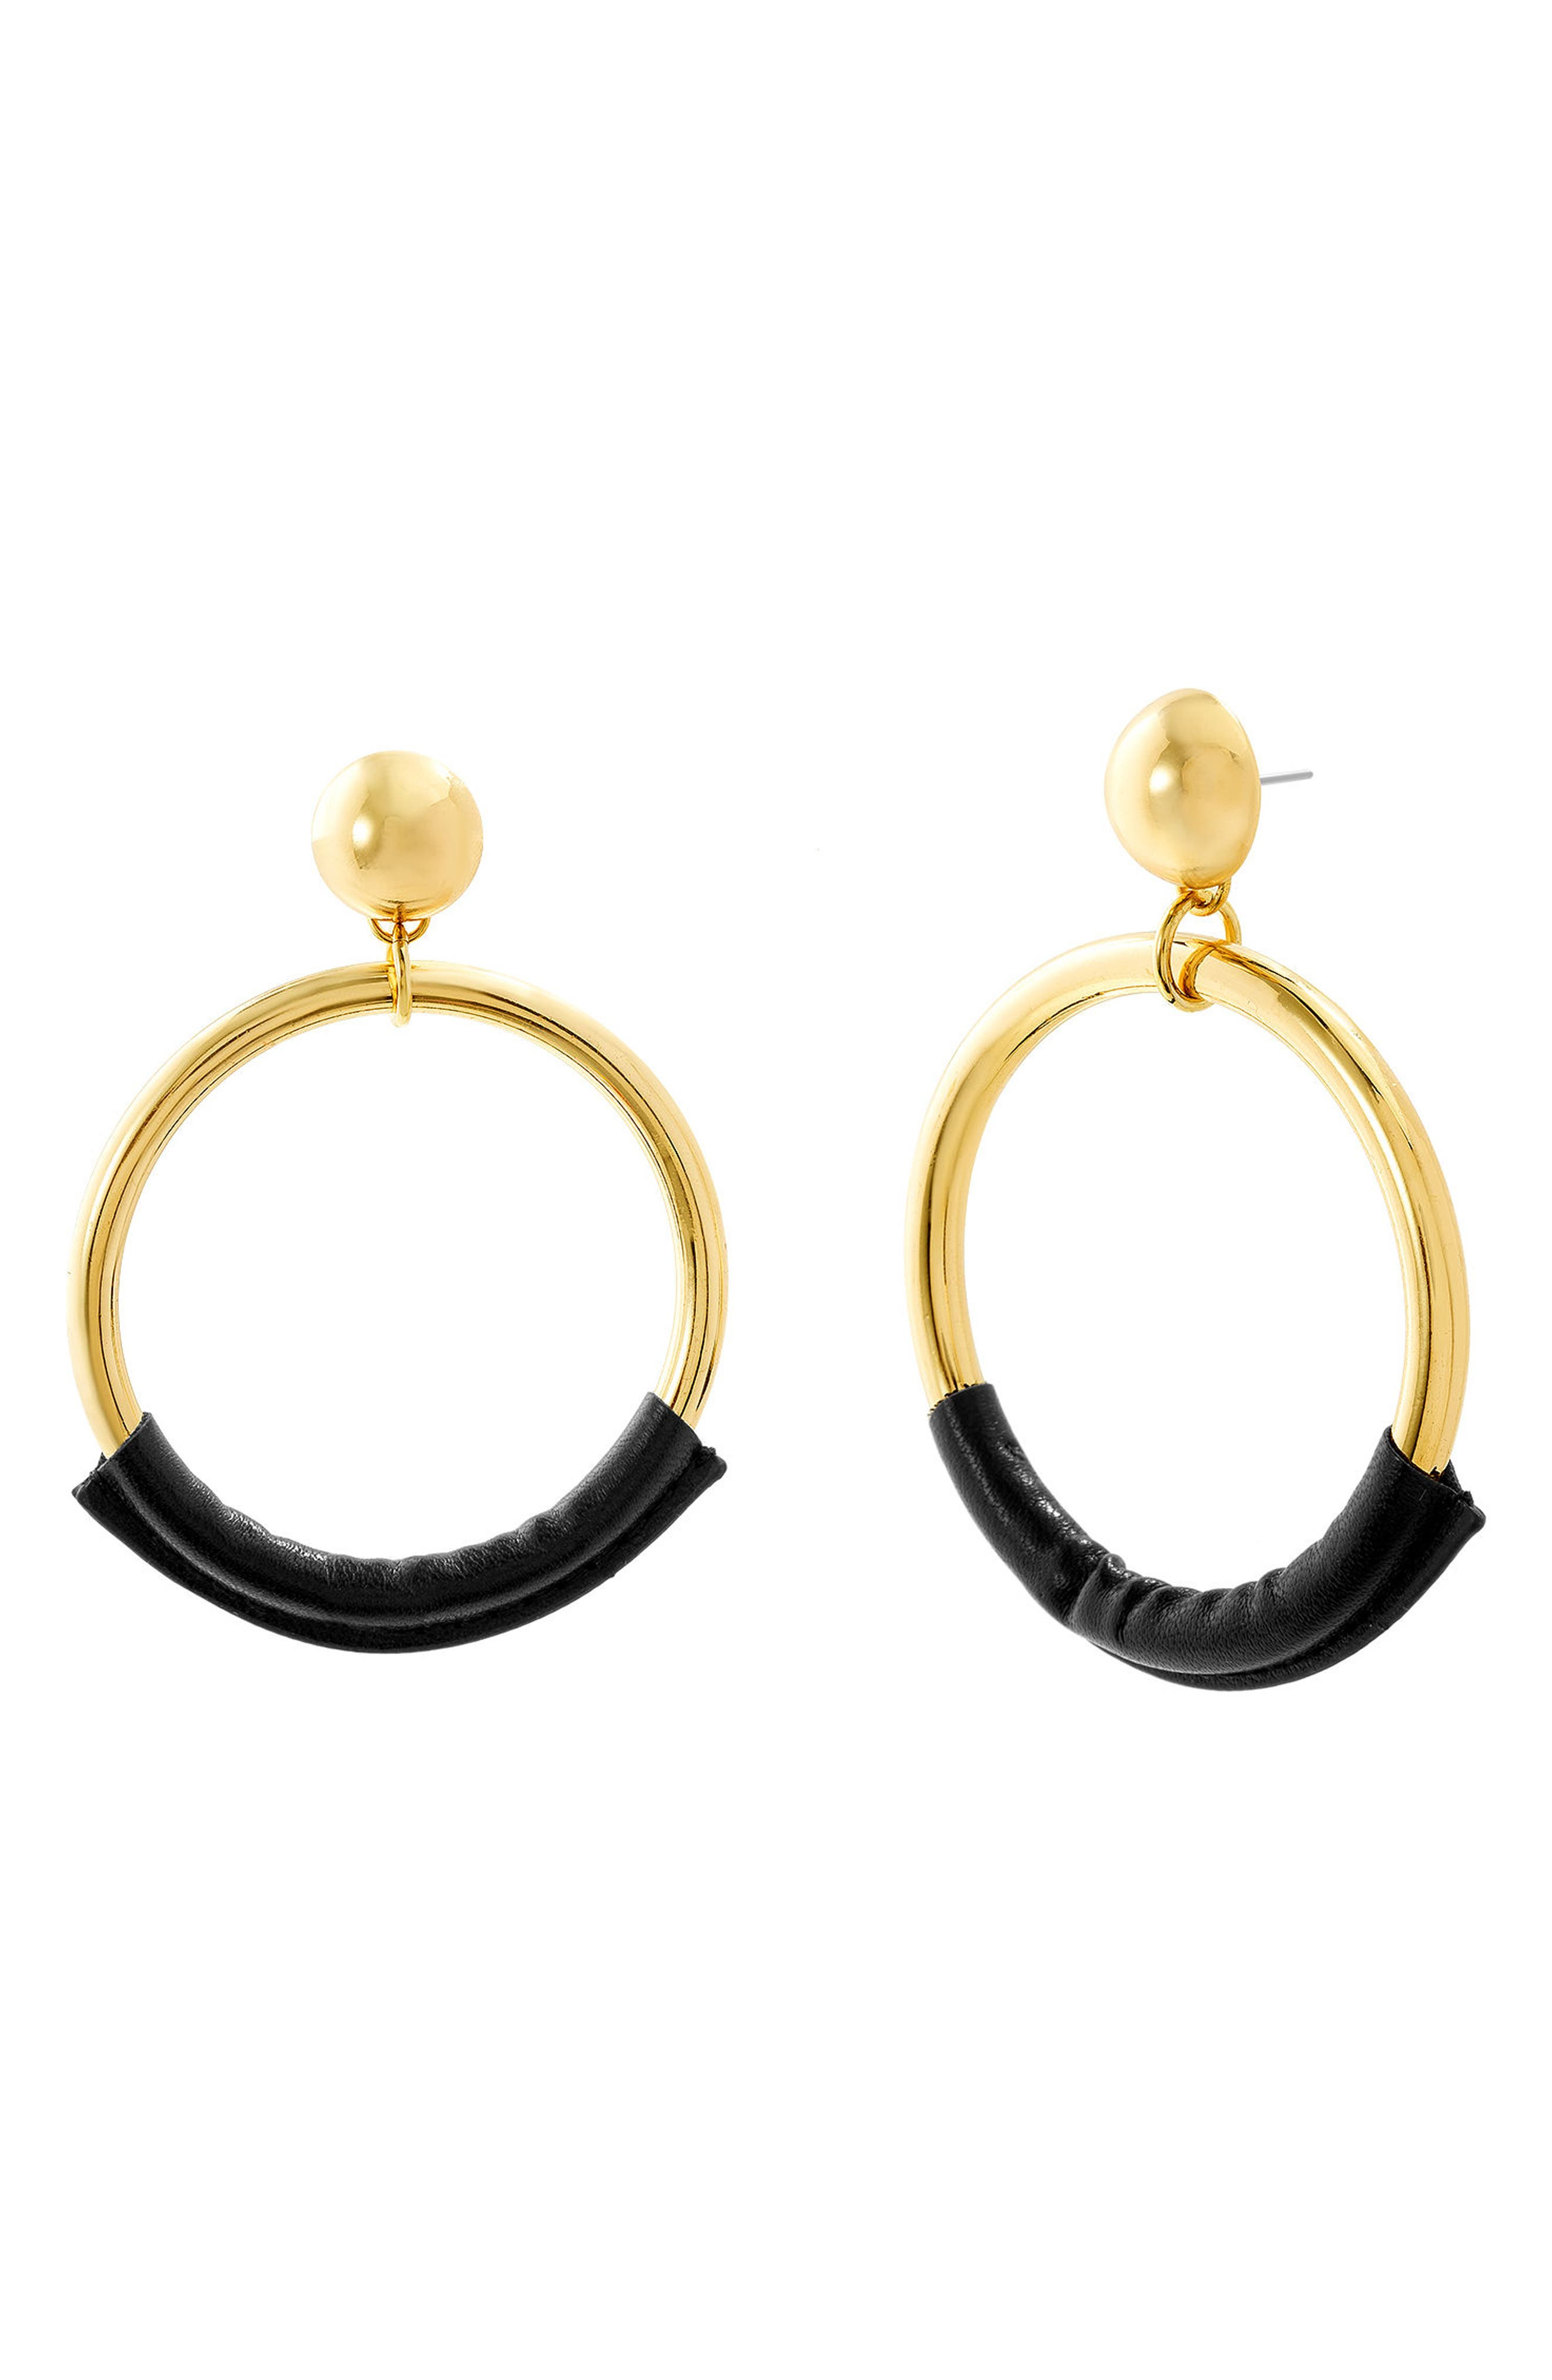 Leather Trim Hoop Earrings,                             Main thumbnail 1, color,                             Gold